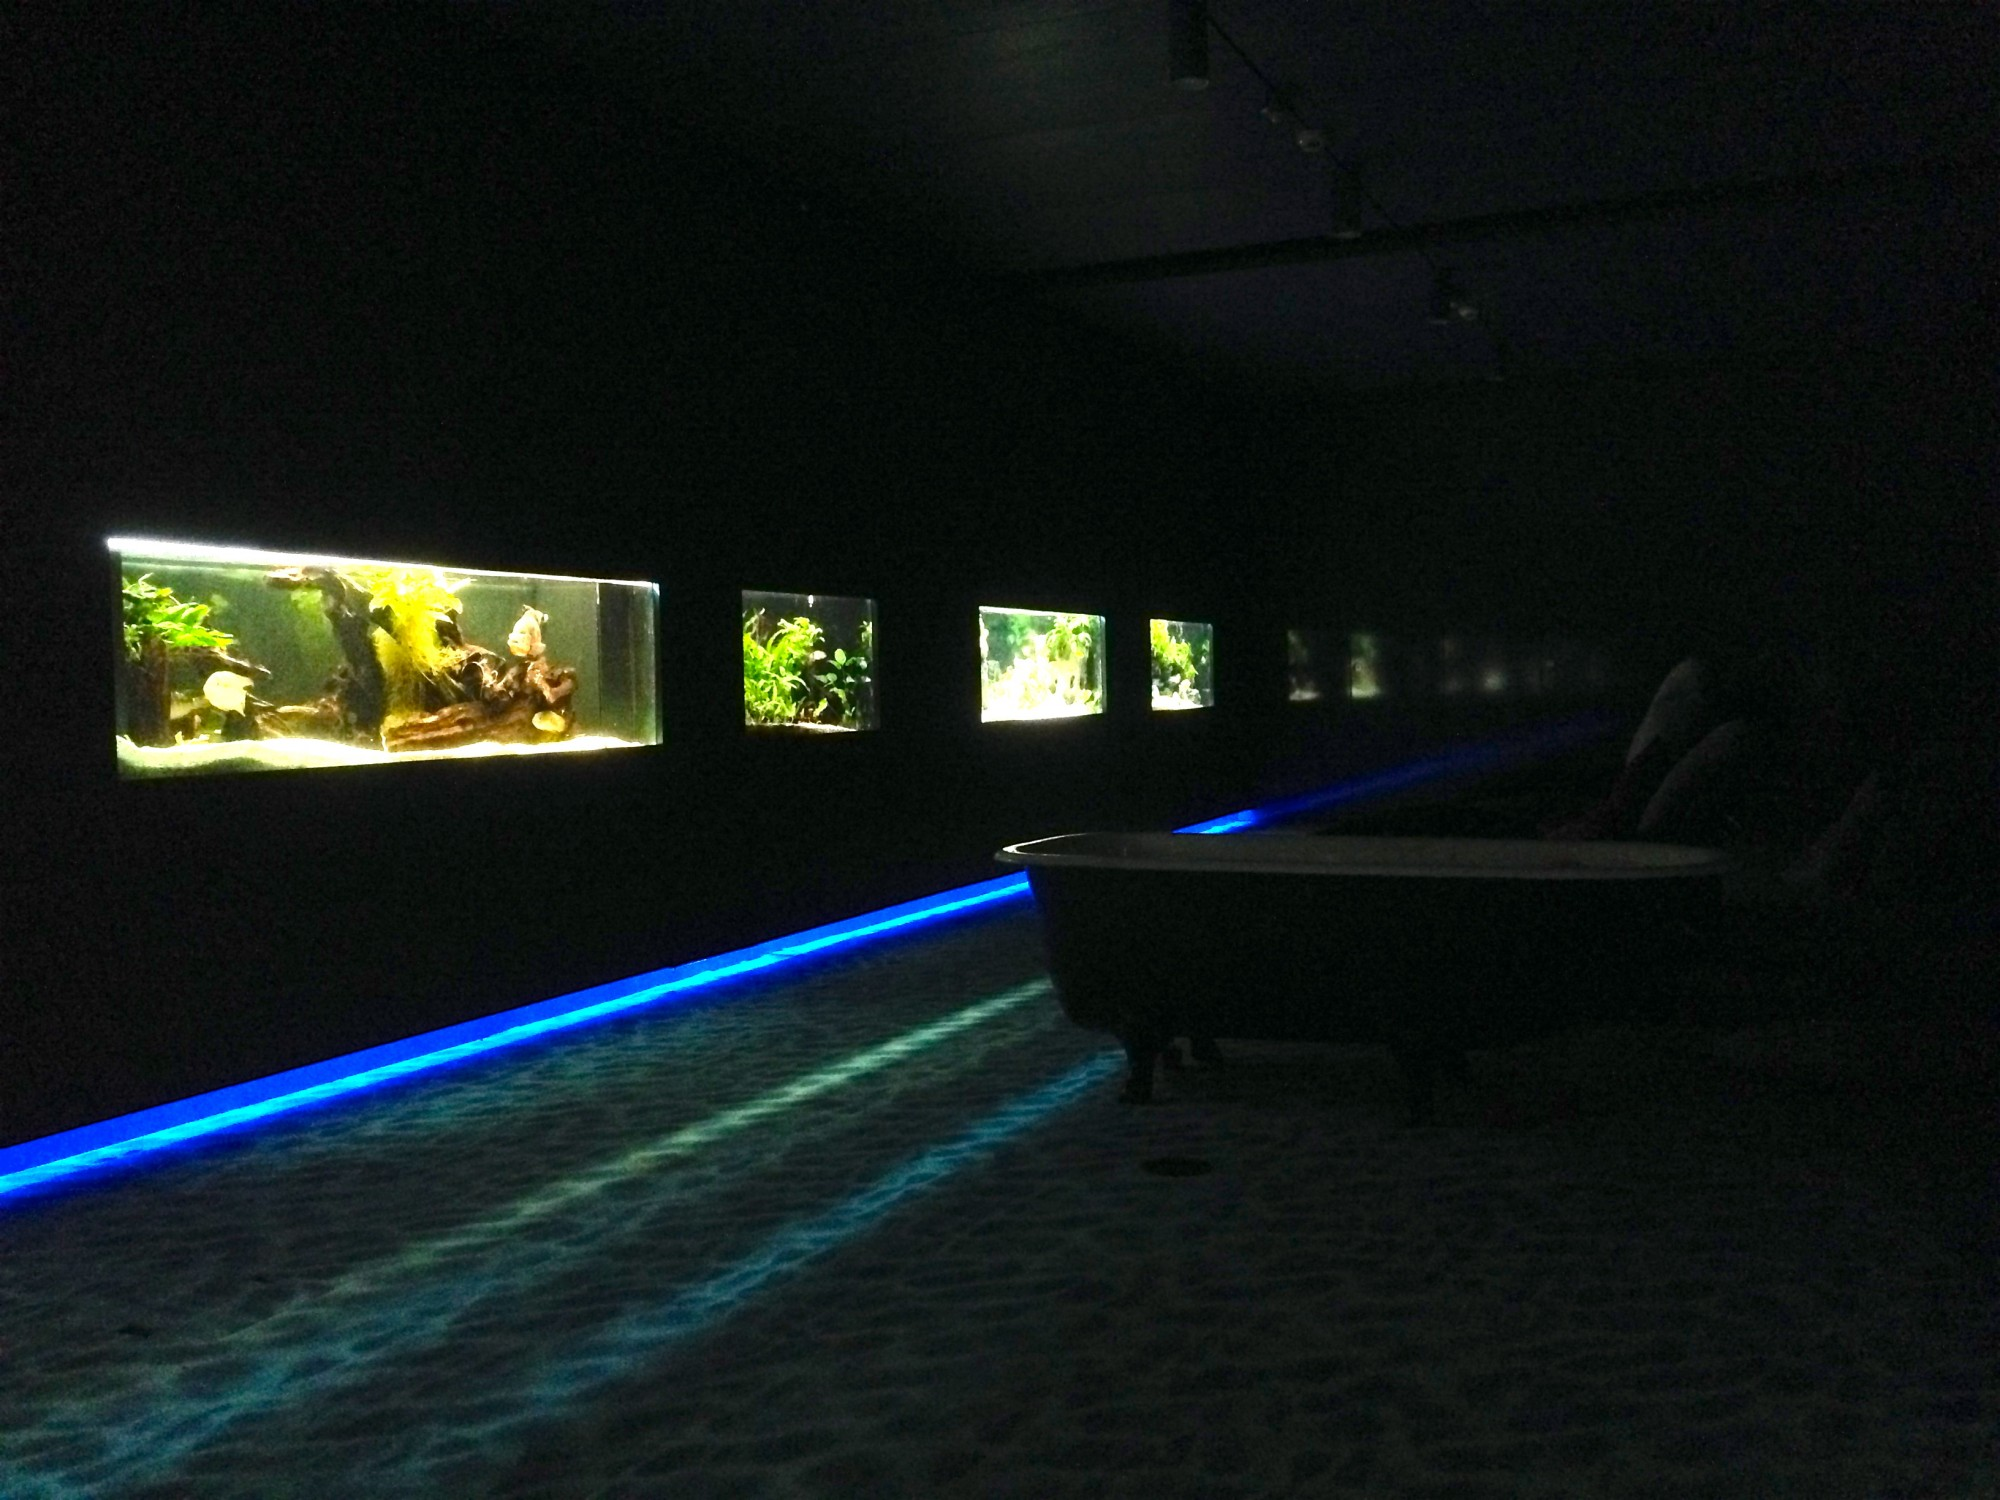 Water Lounge, Google Zurich - shows dark room with couches and fish tanks.